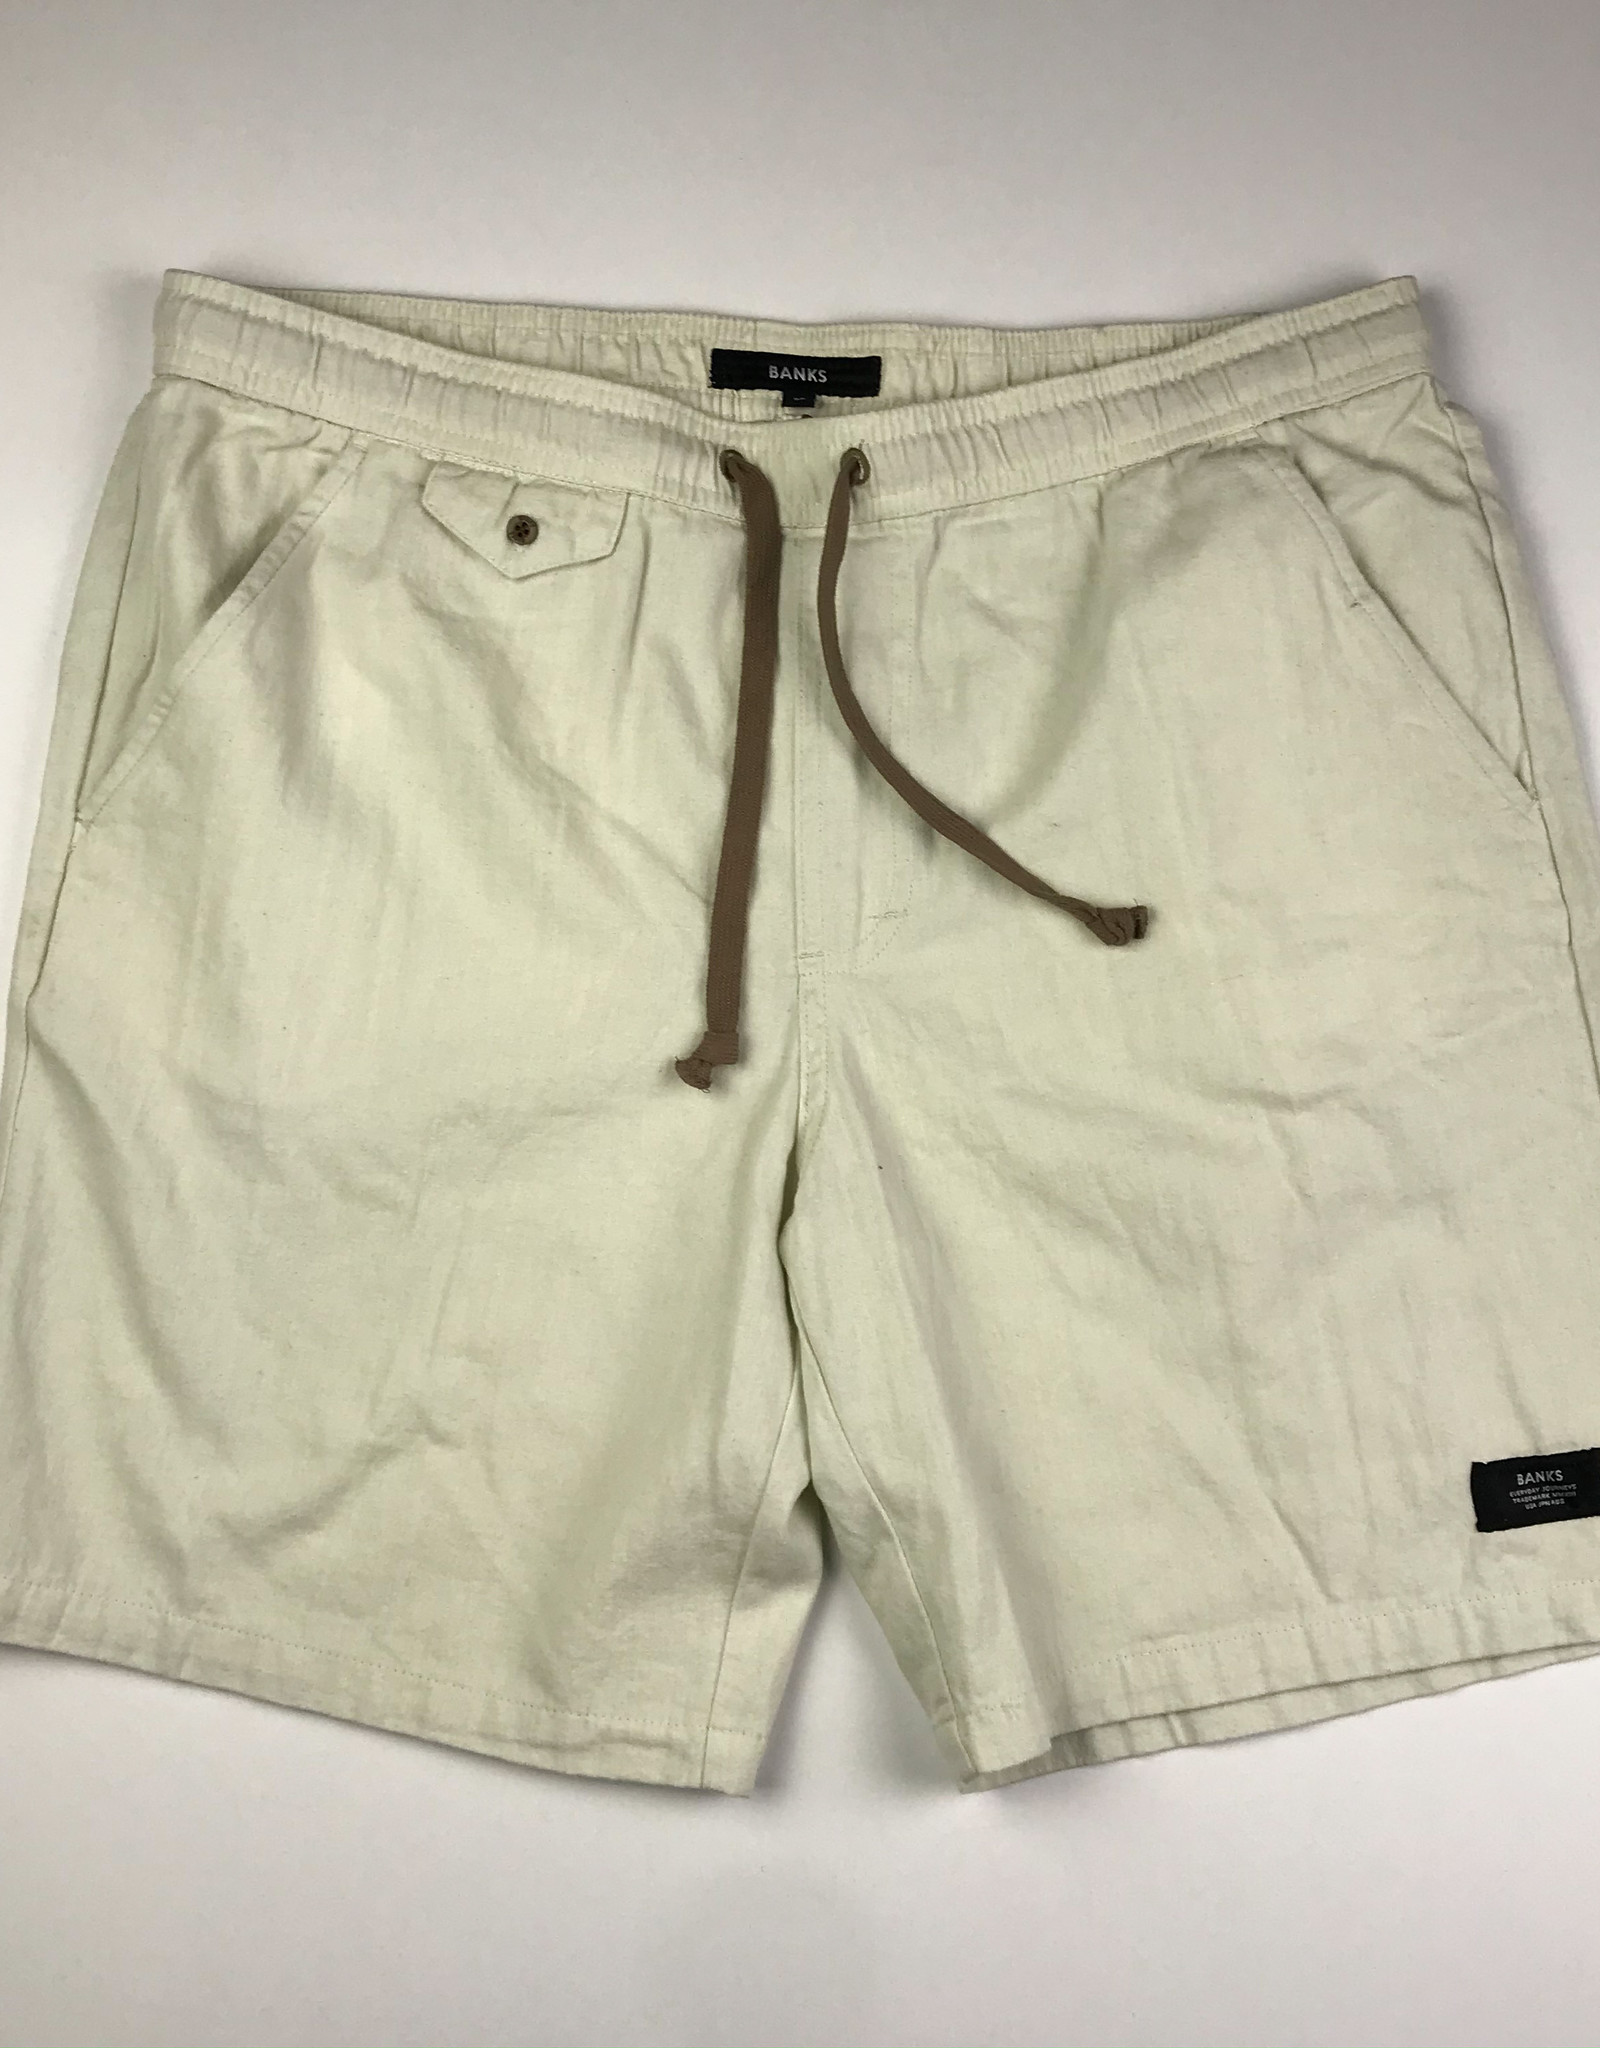 BANKS JOURNAL BANKS WORKERS WALKSHORTS